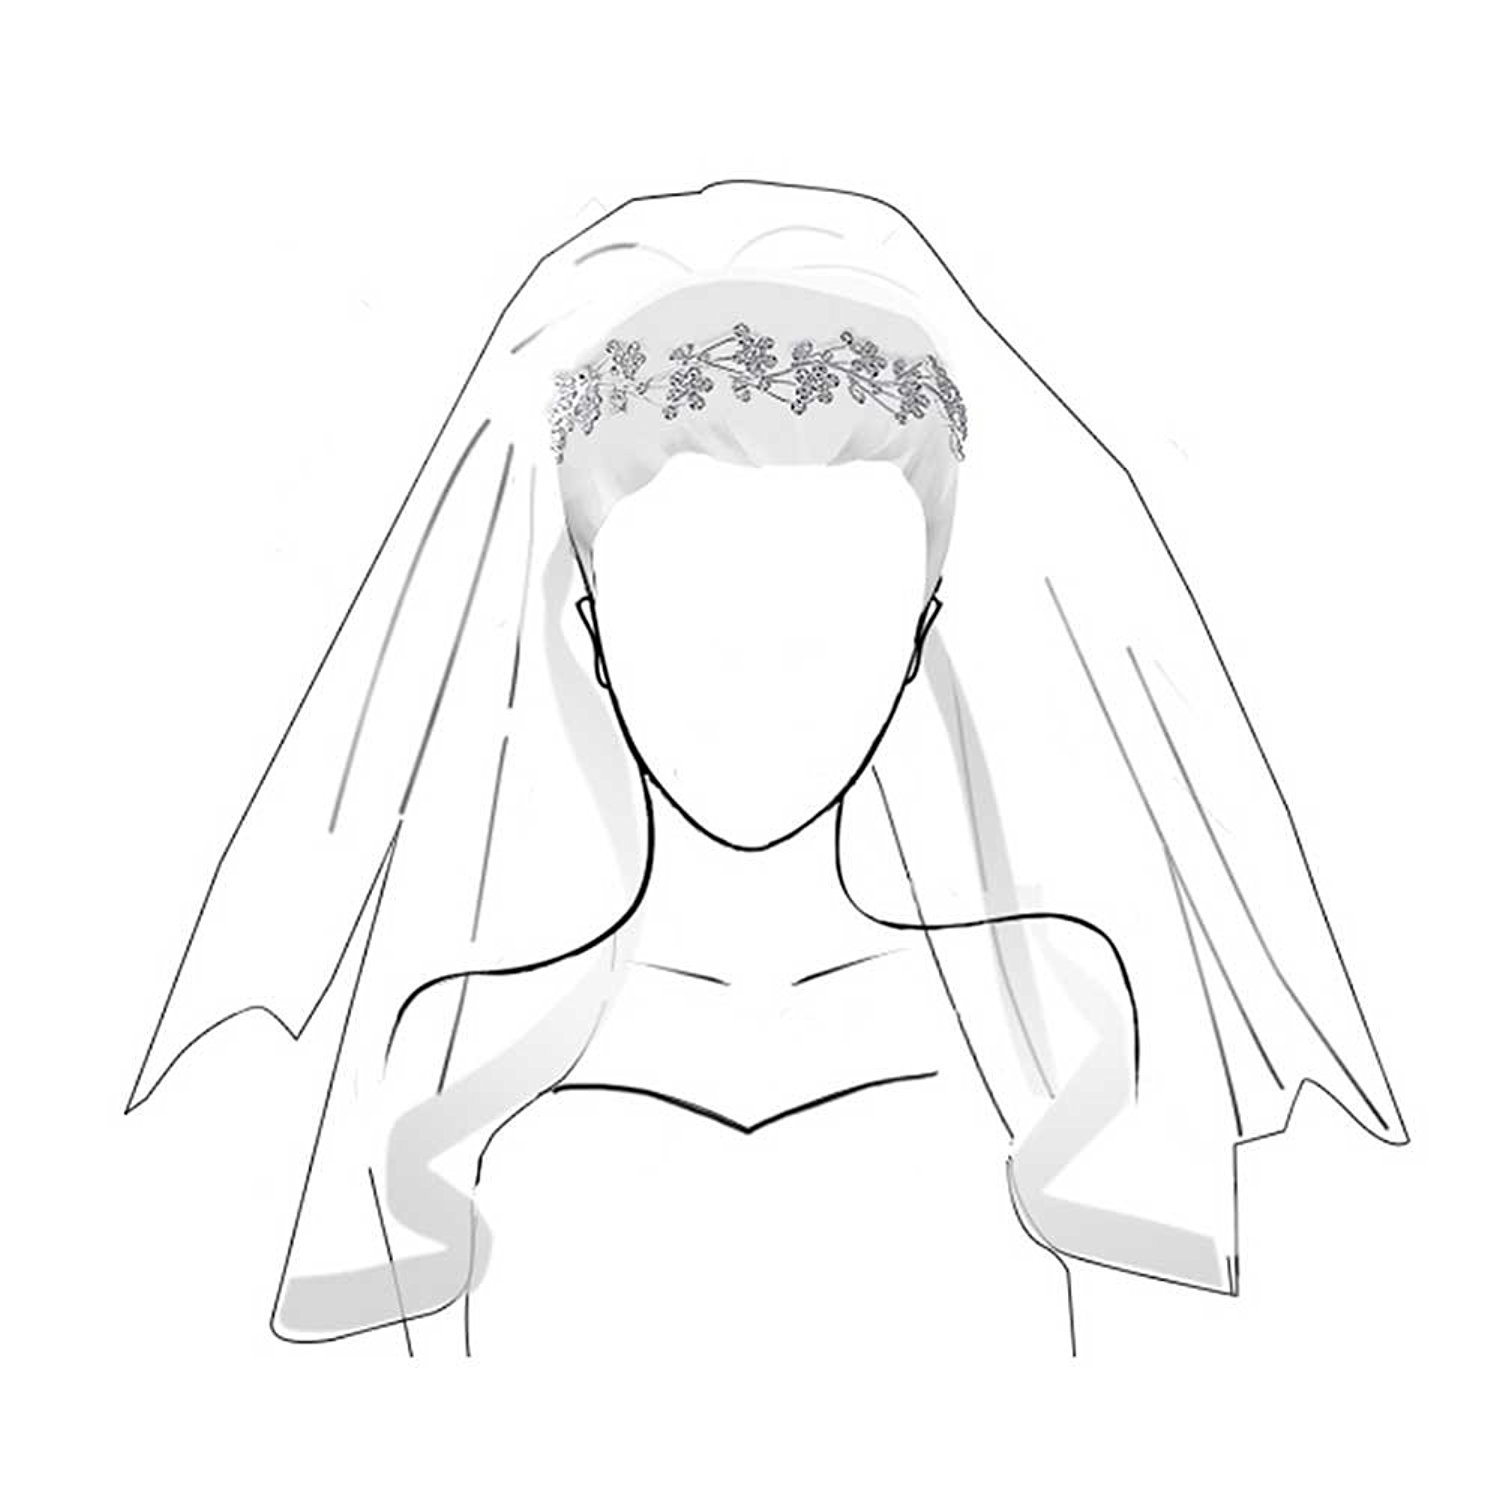 Wedding Veil Drawing At Getdrawings Com Free For